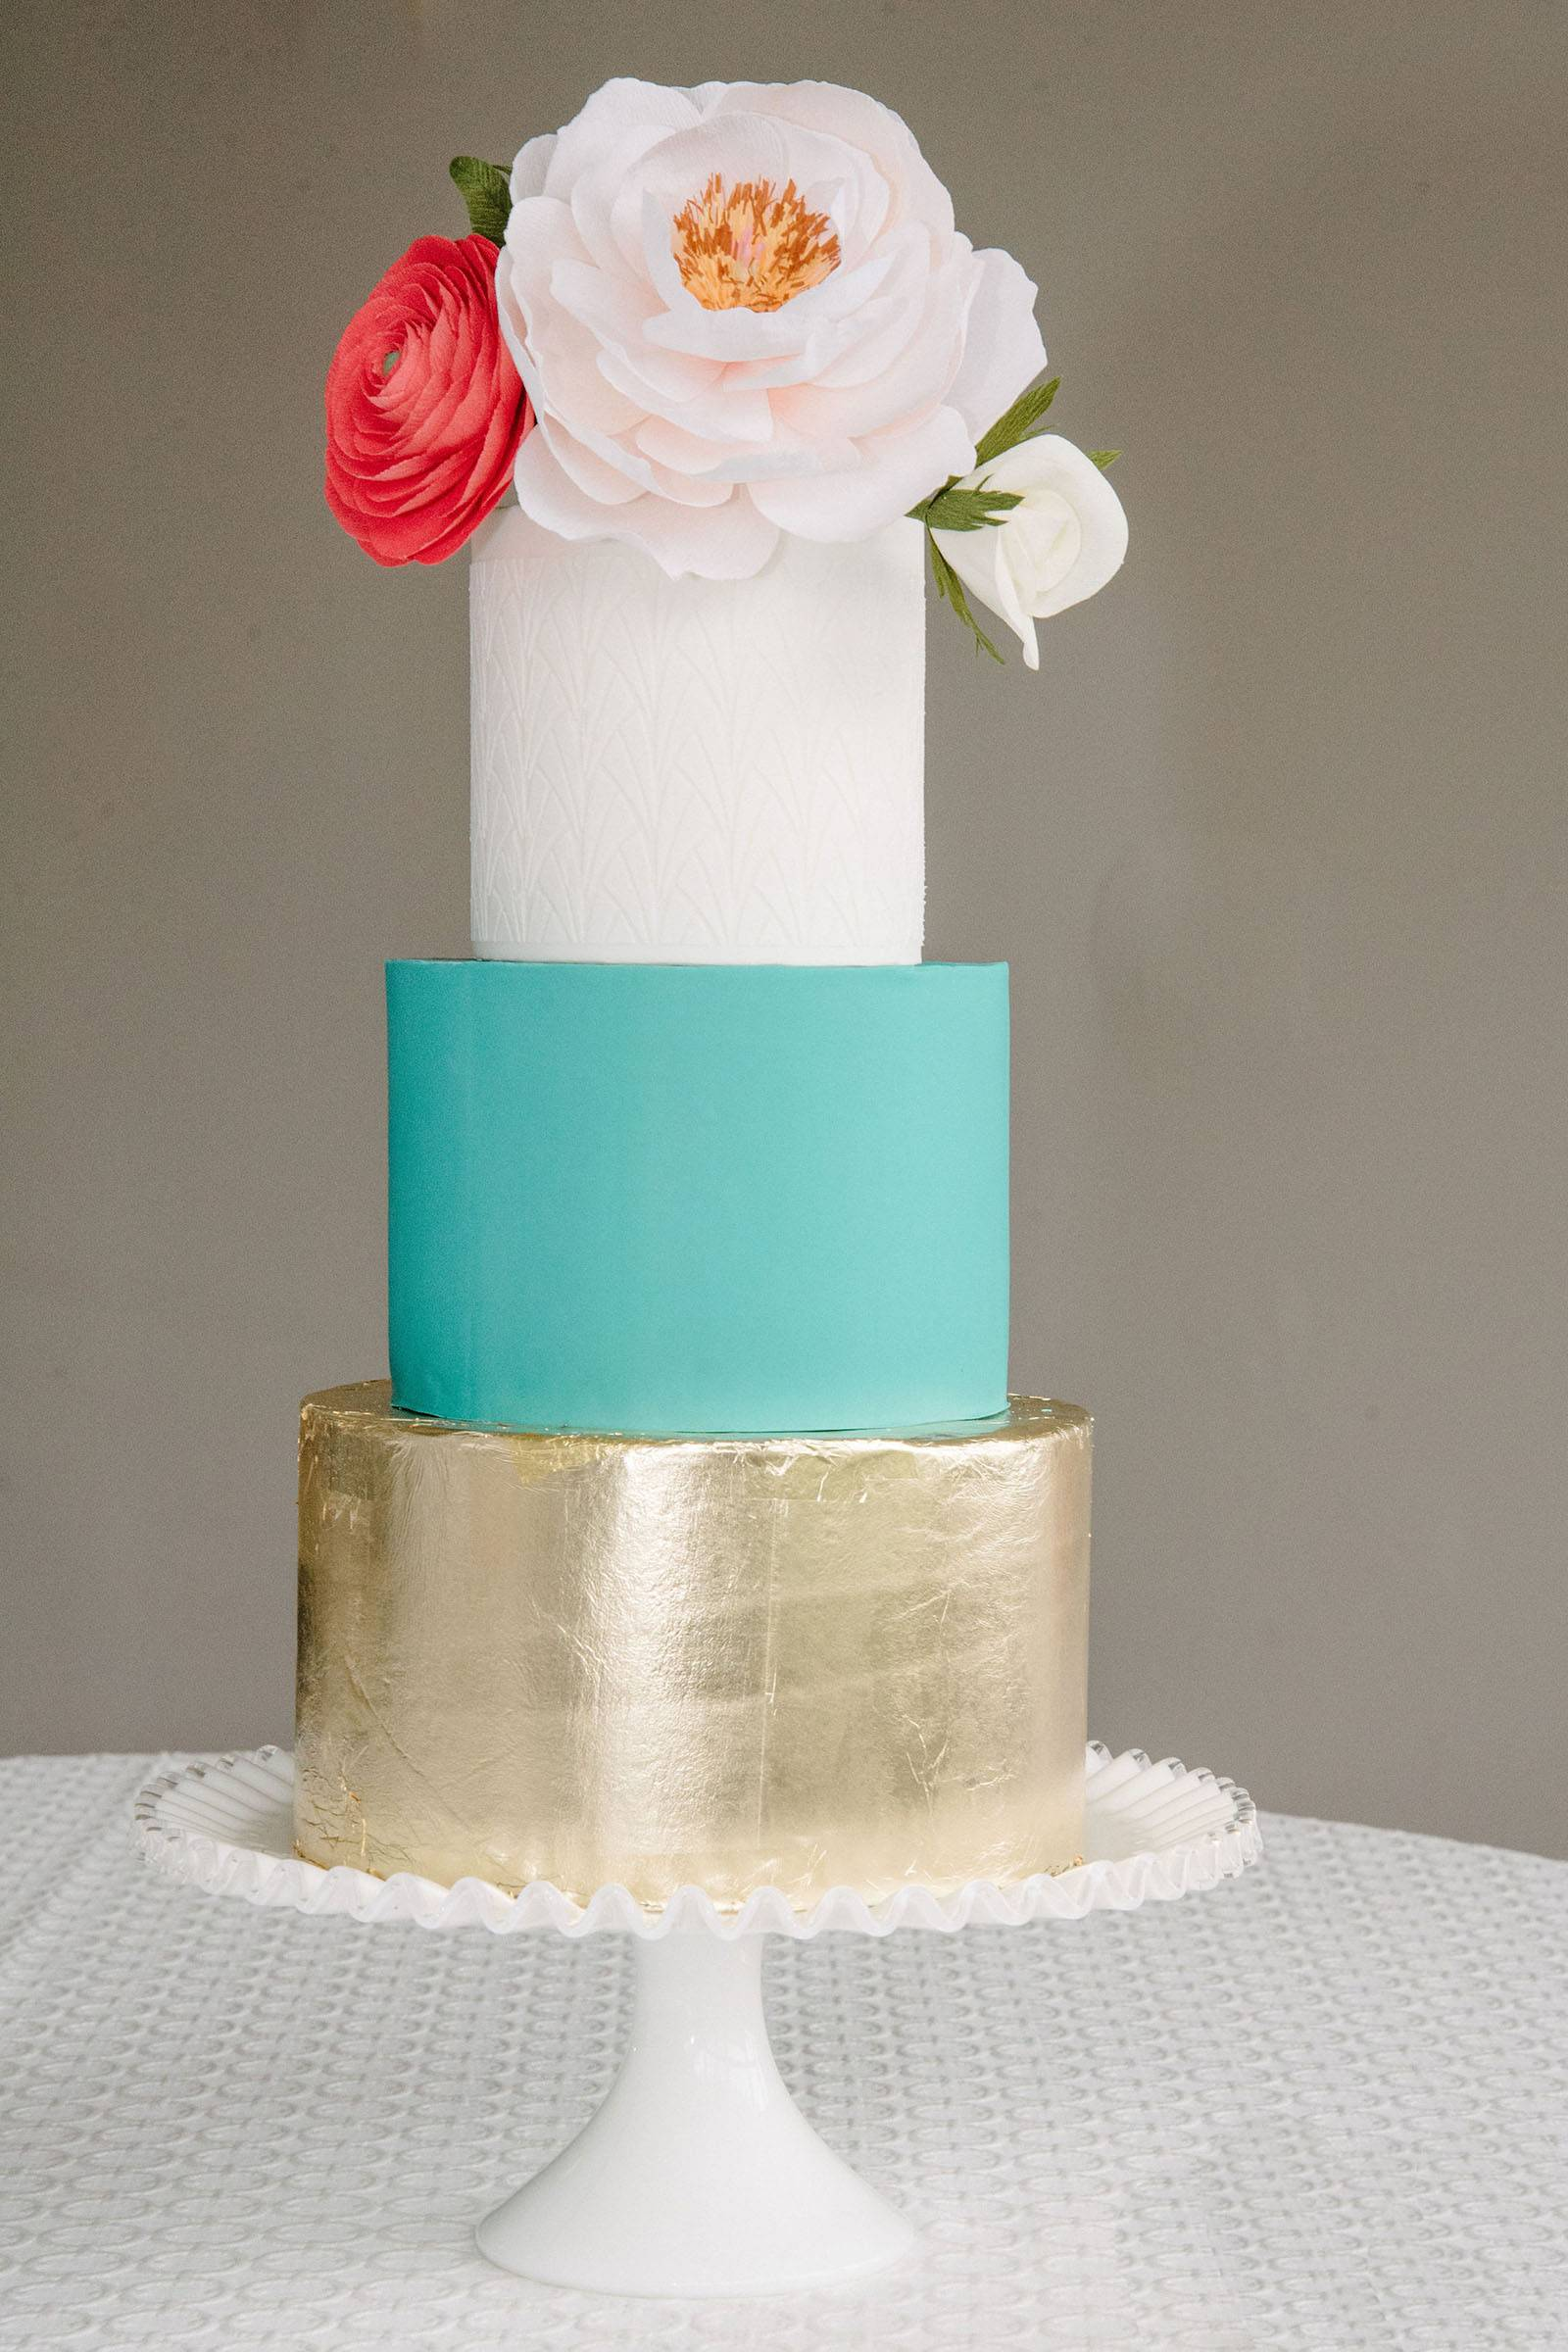 Three tiered cake in white, aqua and gold foil